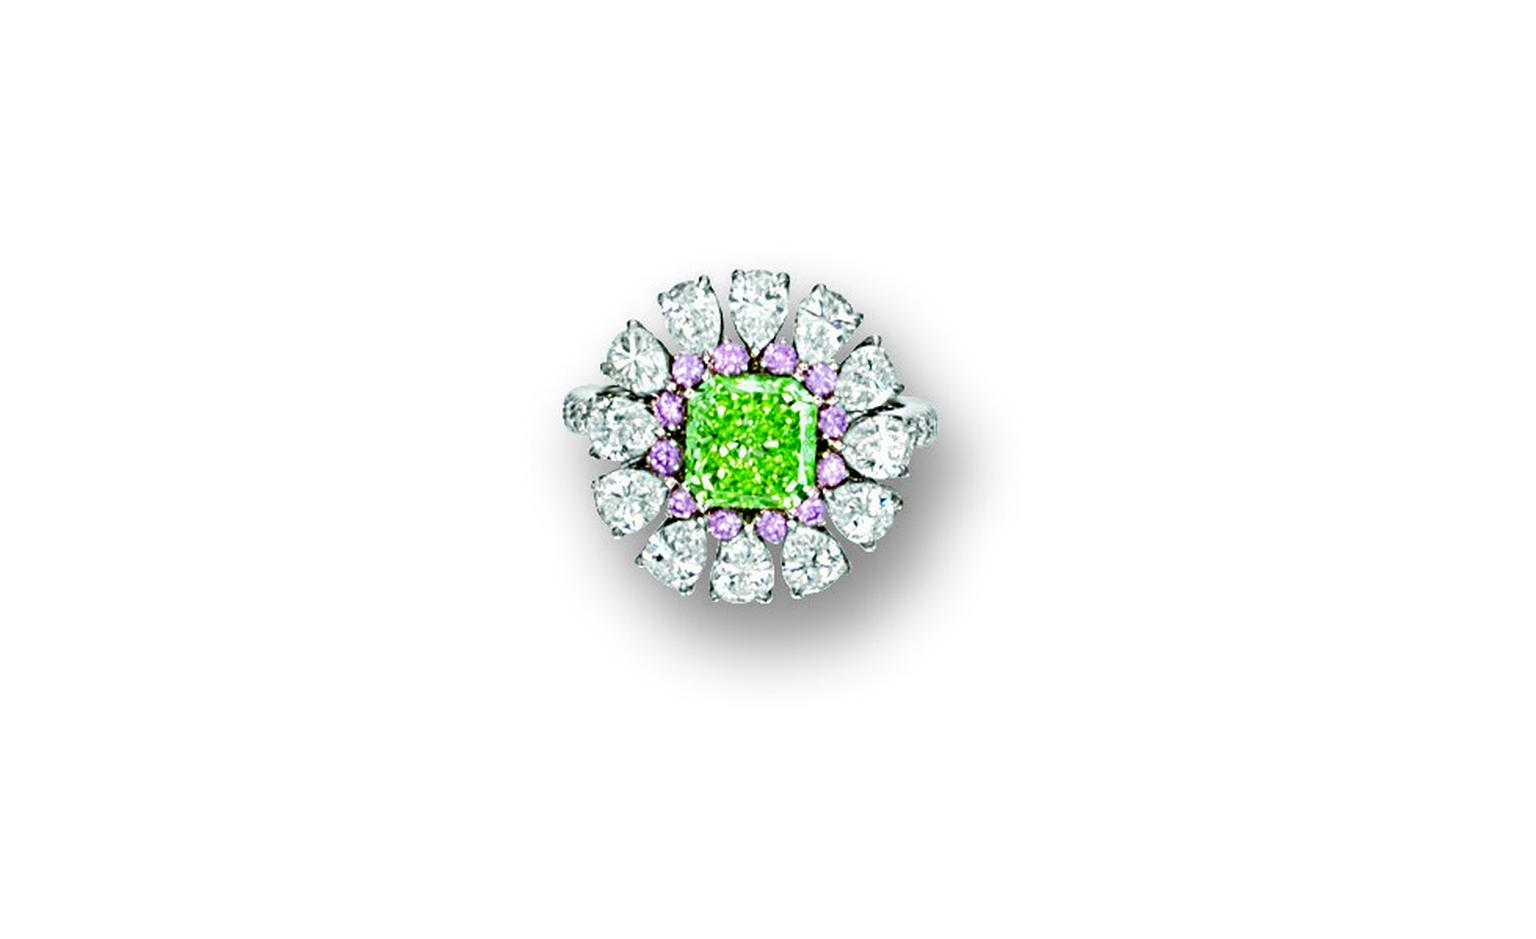 LOT 2840 . Fancy vivid yellowish green diamond, pink diamond and diamond ring, Nirav Modi. EST 2,500,000 - 3,000,000 HKD SOLD 3,740,000 HKD